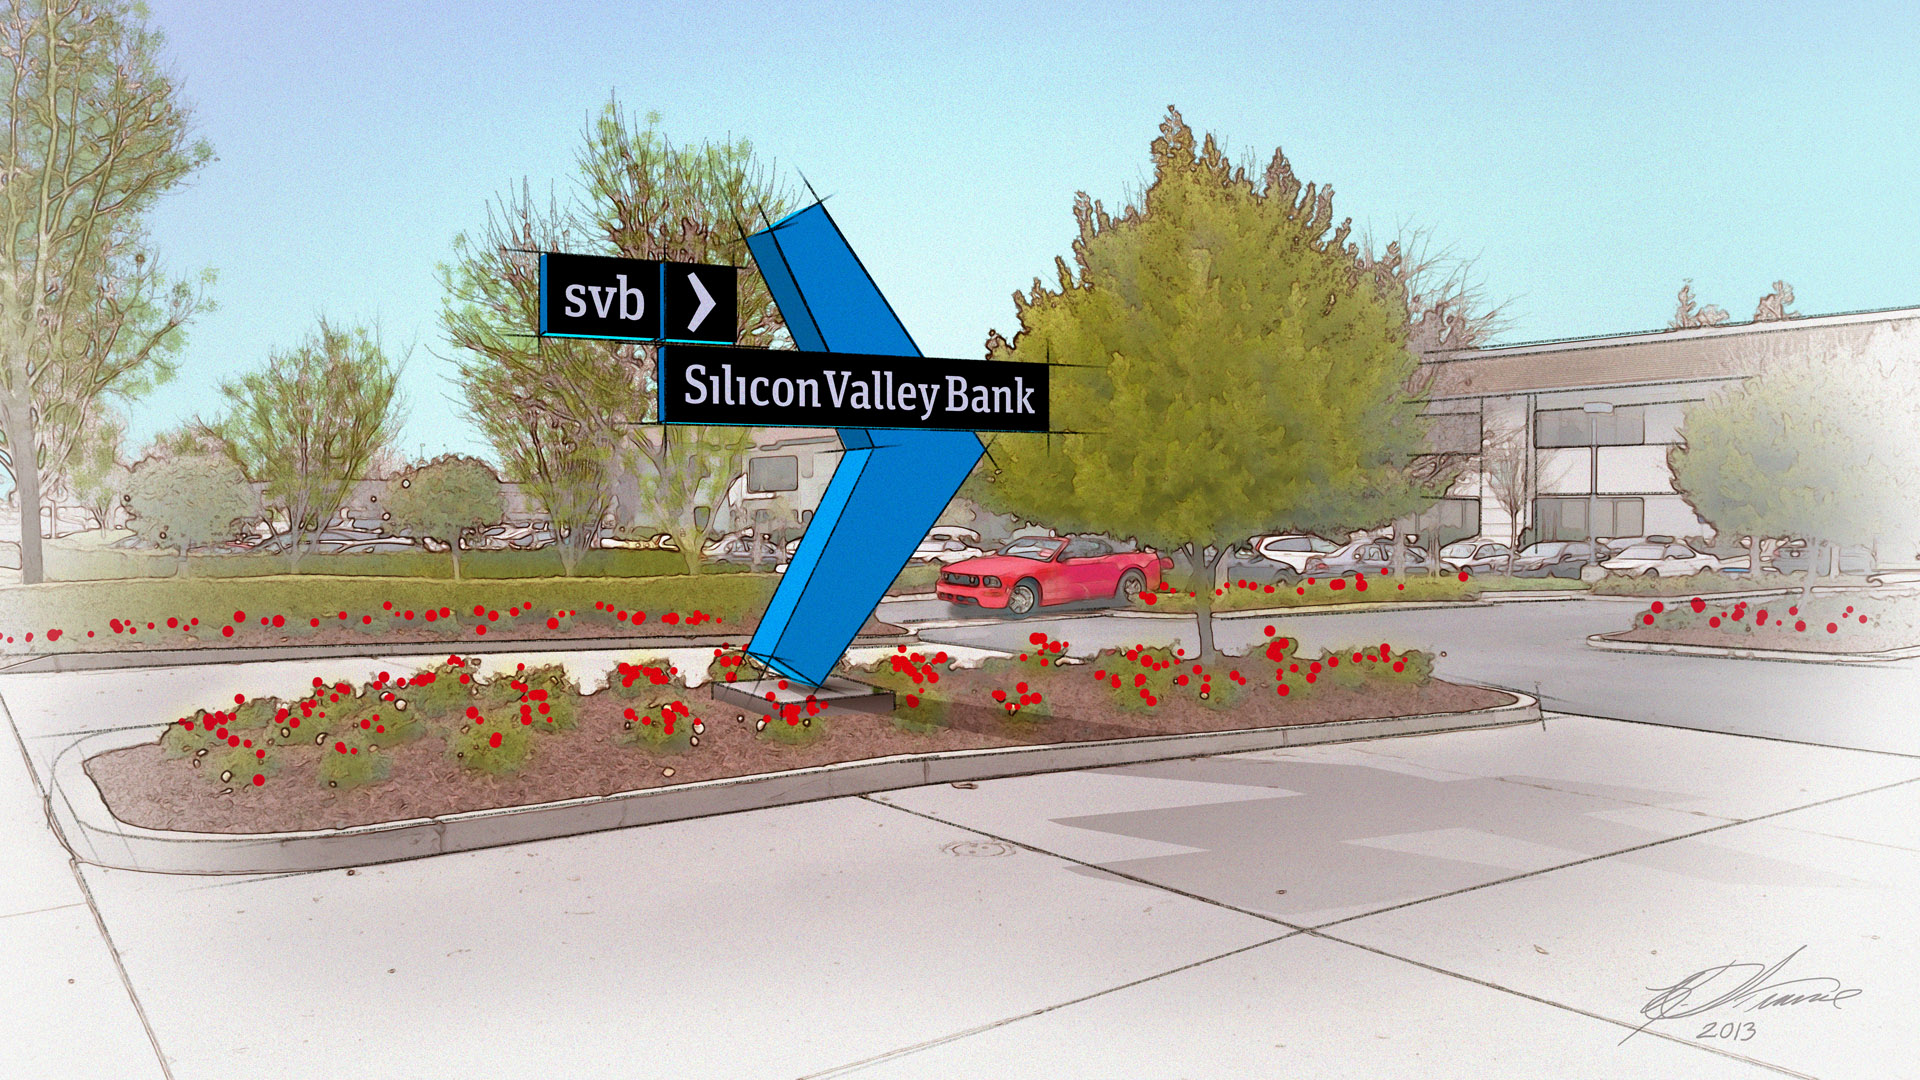 Silicon Valley Bank Driveway Sign